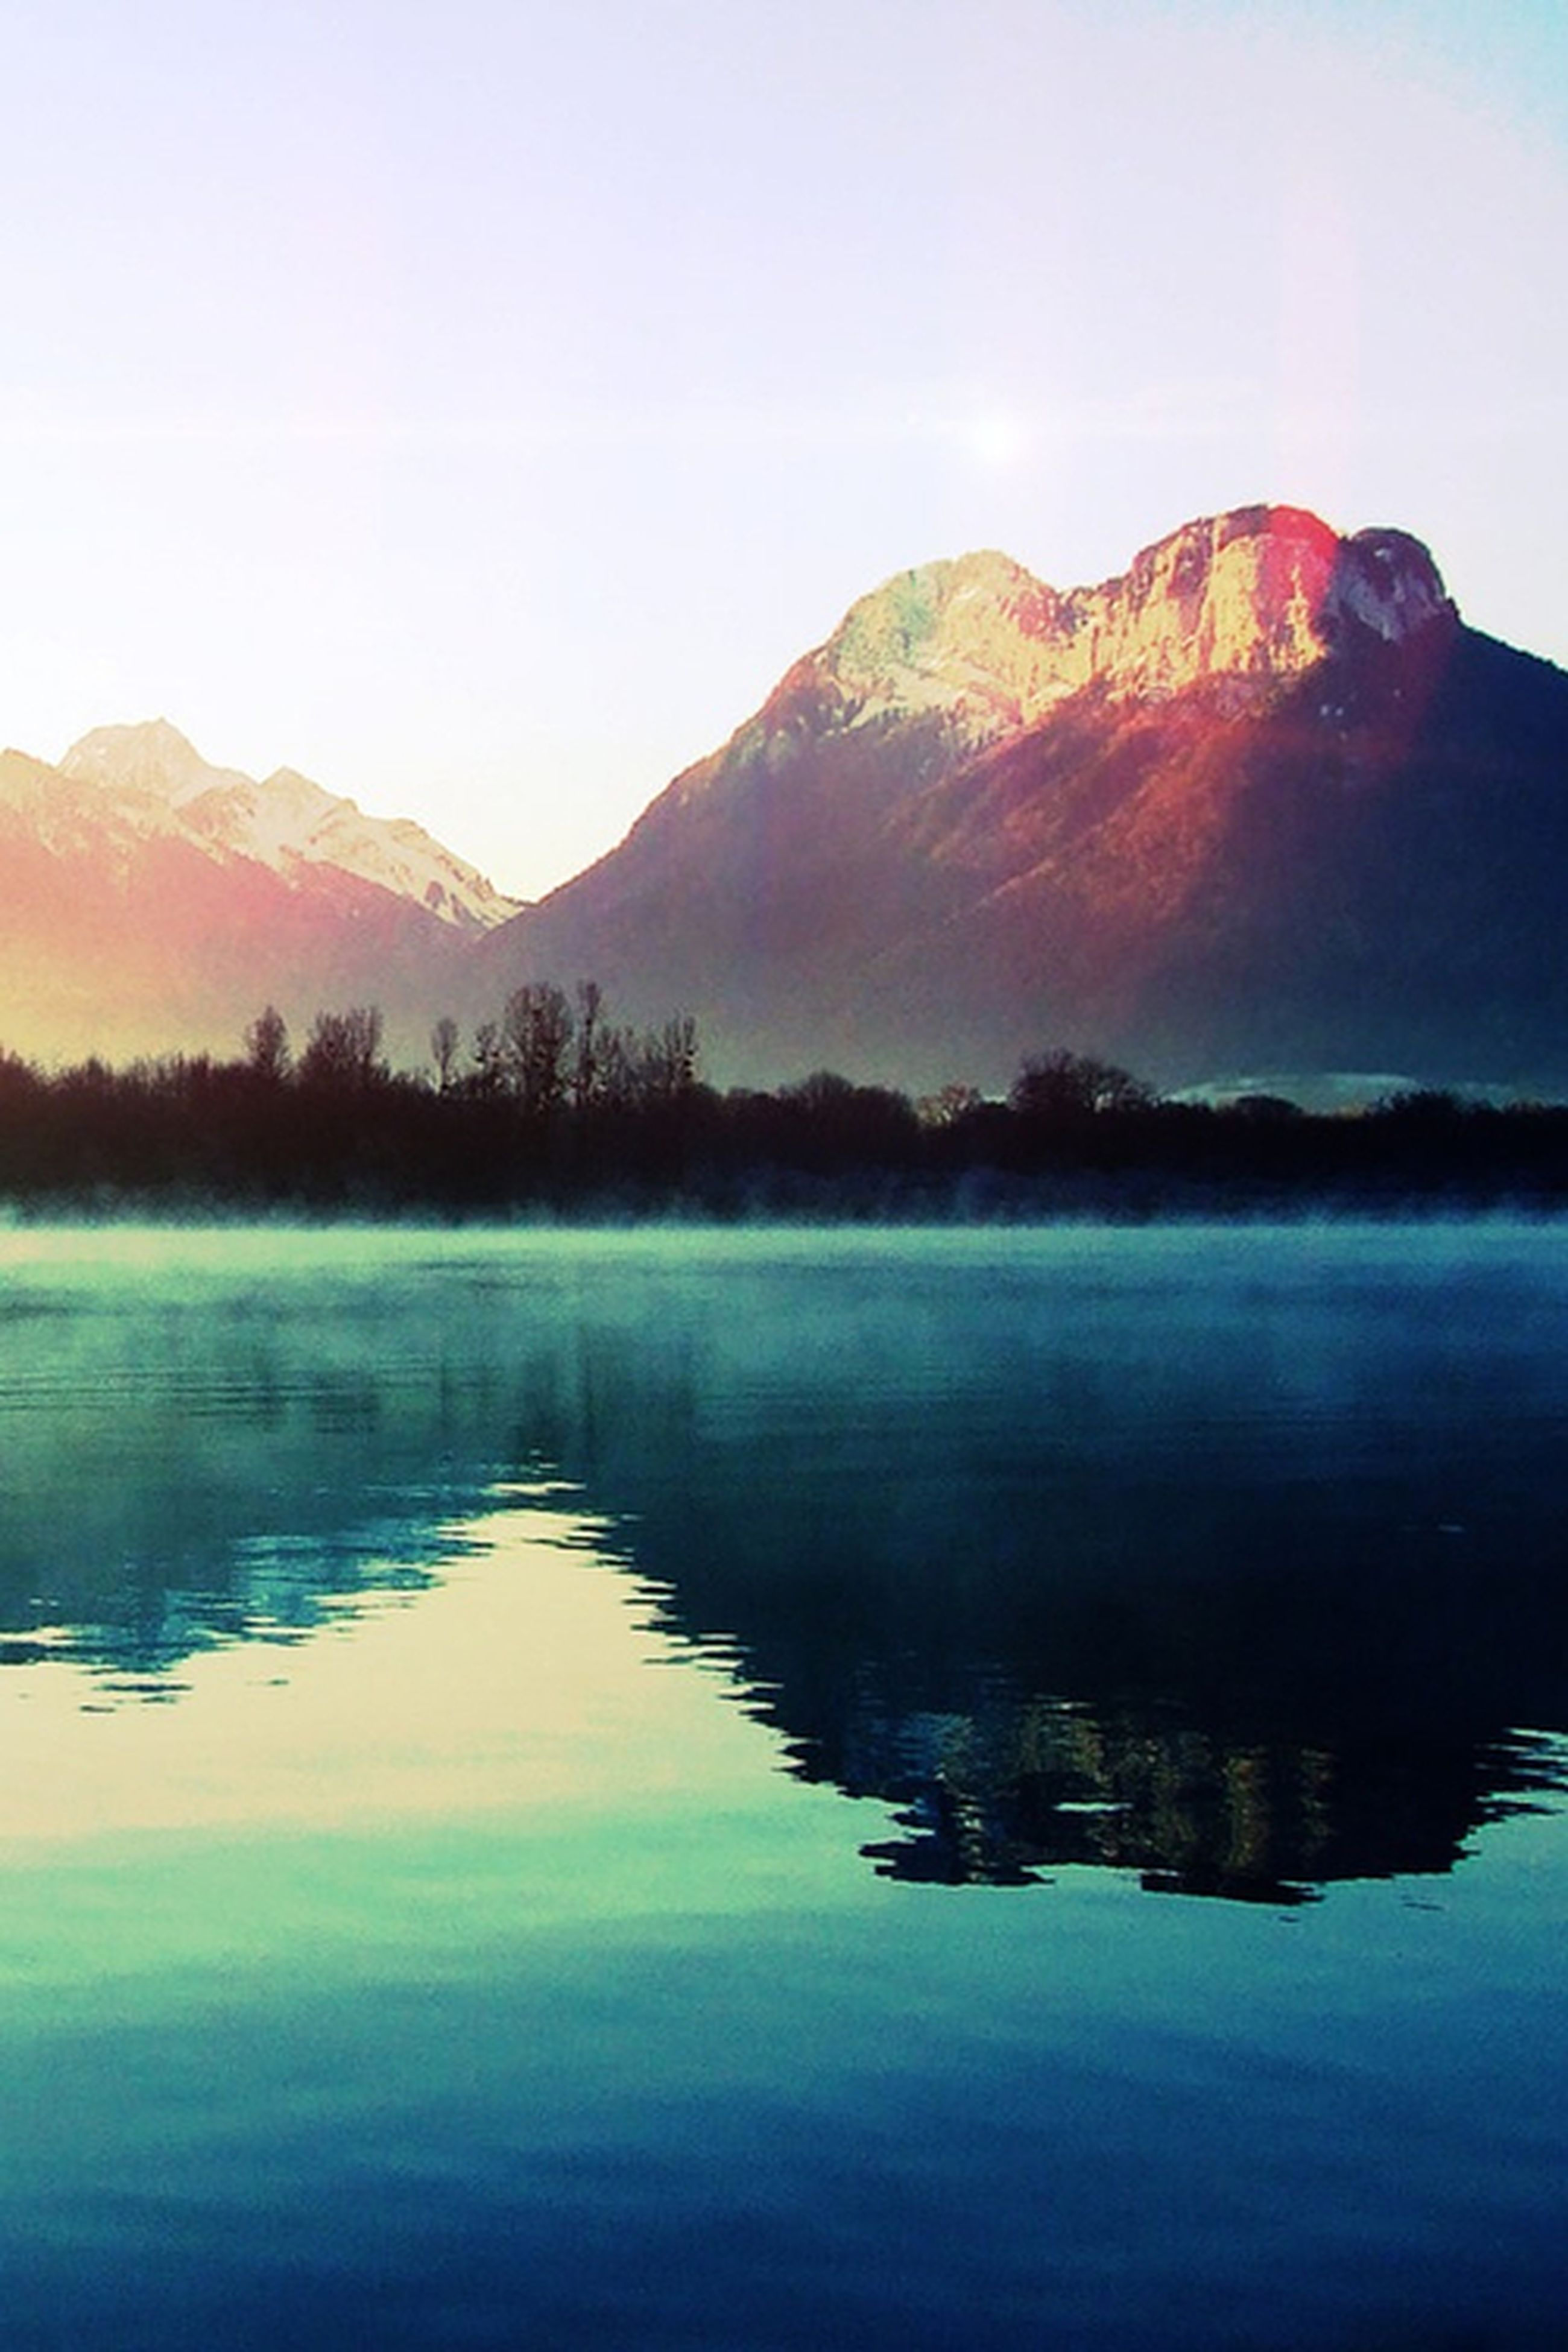 water, mountain, reflection, lake, tranquil scene, scenics, tranquility, waterfront, beauty in nature, clear sky, mountain range, nature, idyllic, sky, non-urban scene, calm, outdoors, majestic, no people, standing water